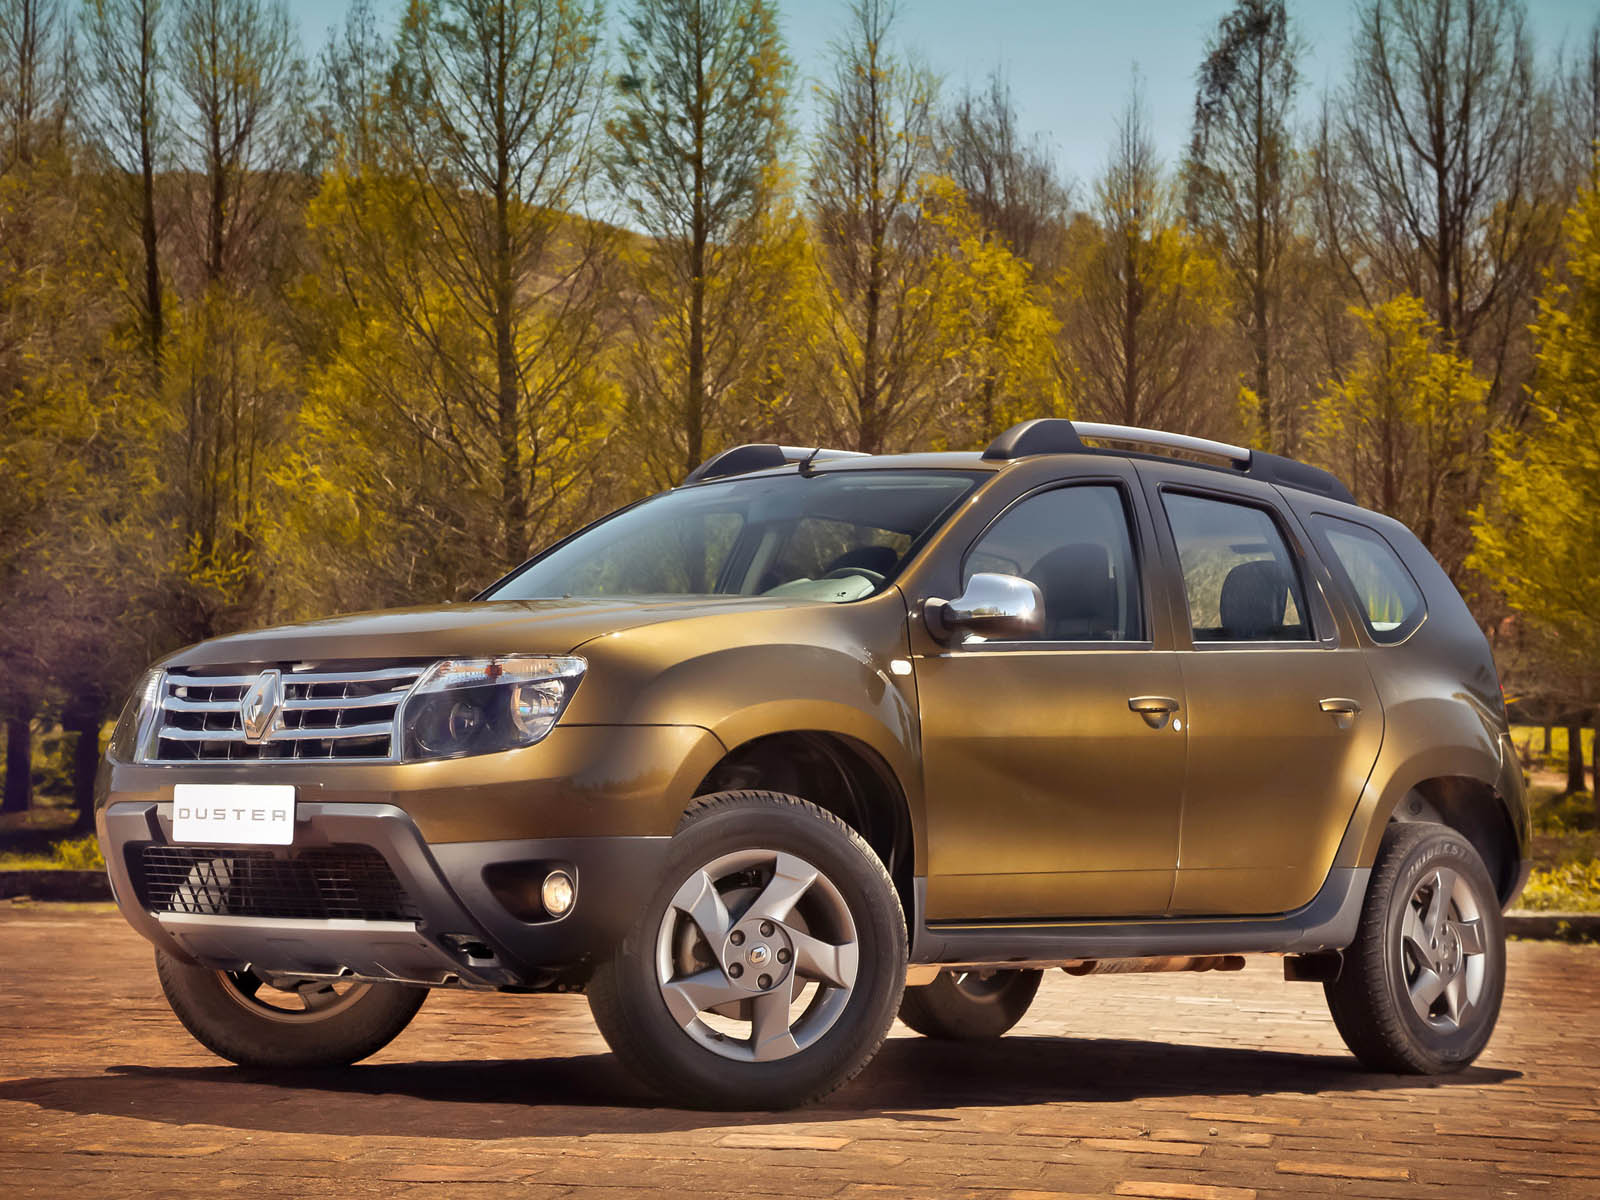 Autumn Flowers Wallpapers Renault Duster Car